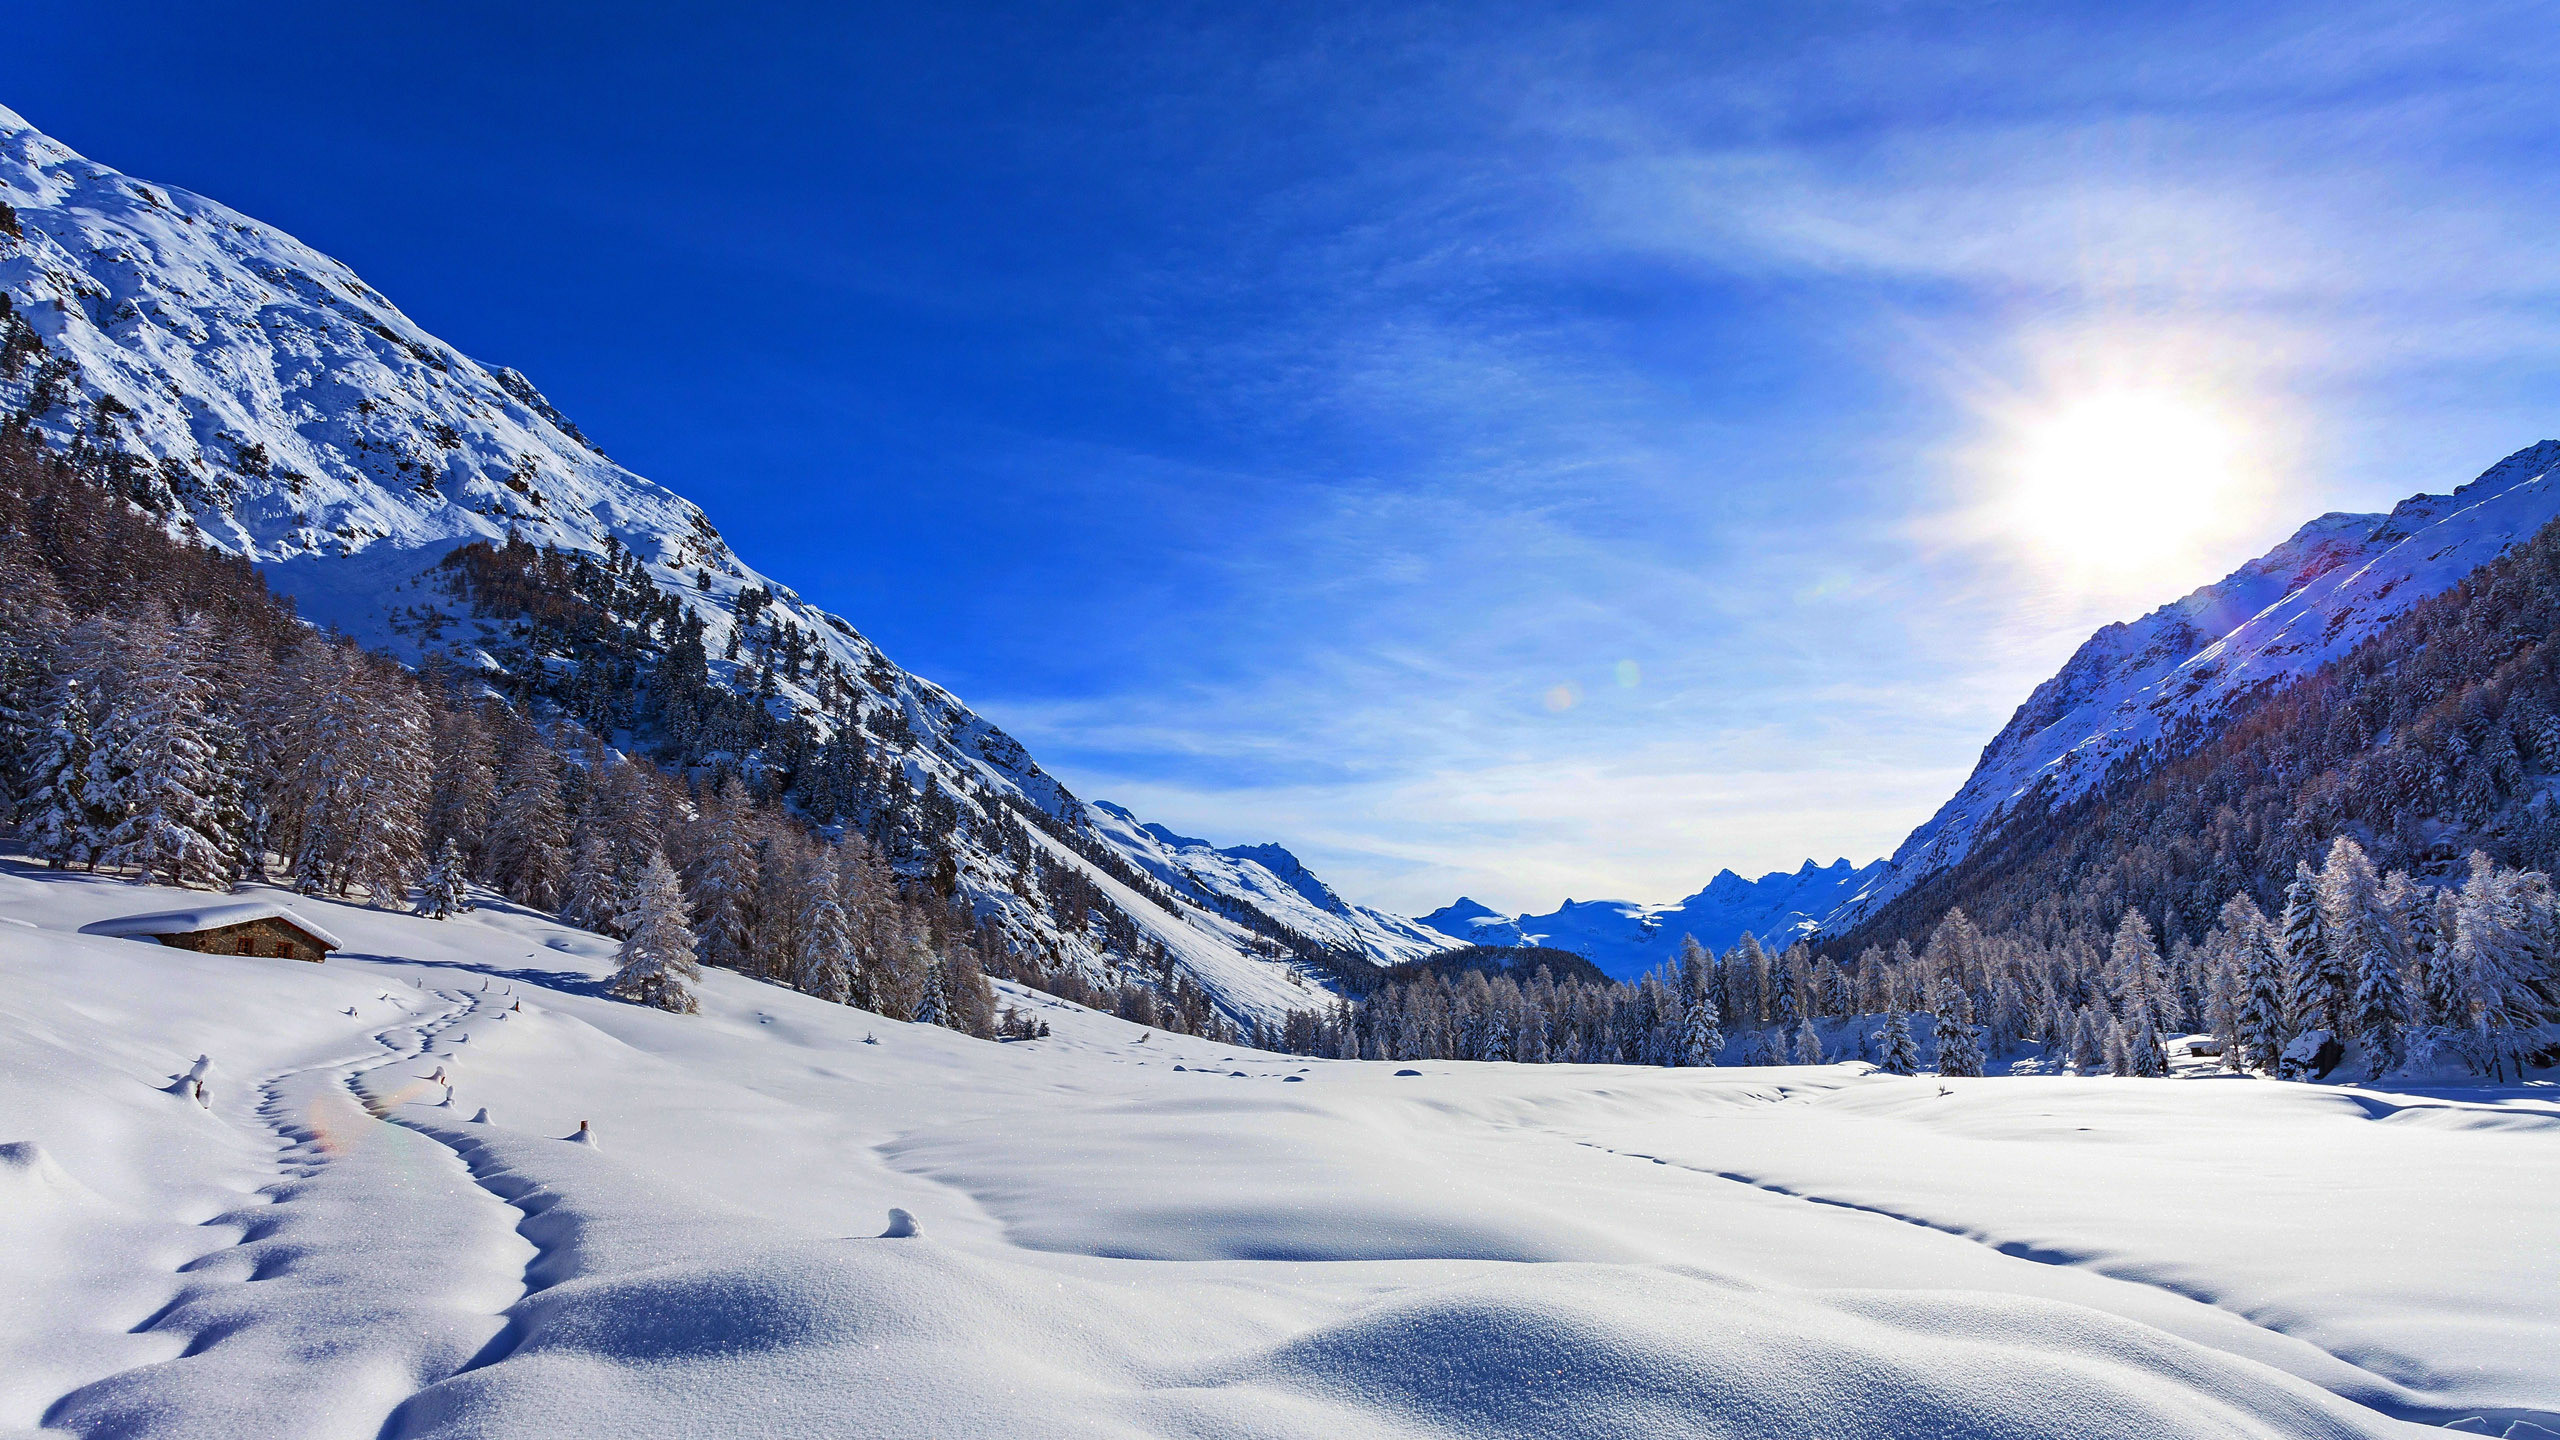 … rising over snowy mountains HD Wallpaper 2560×1440